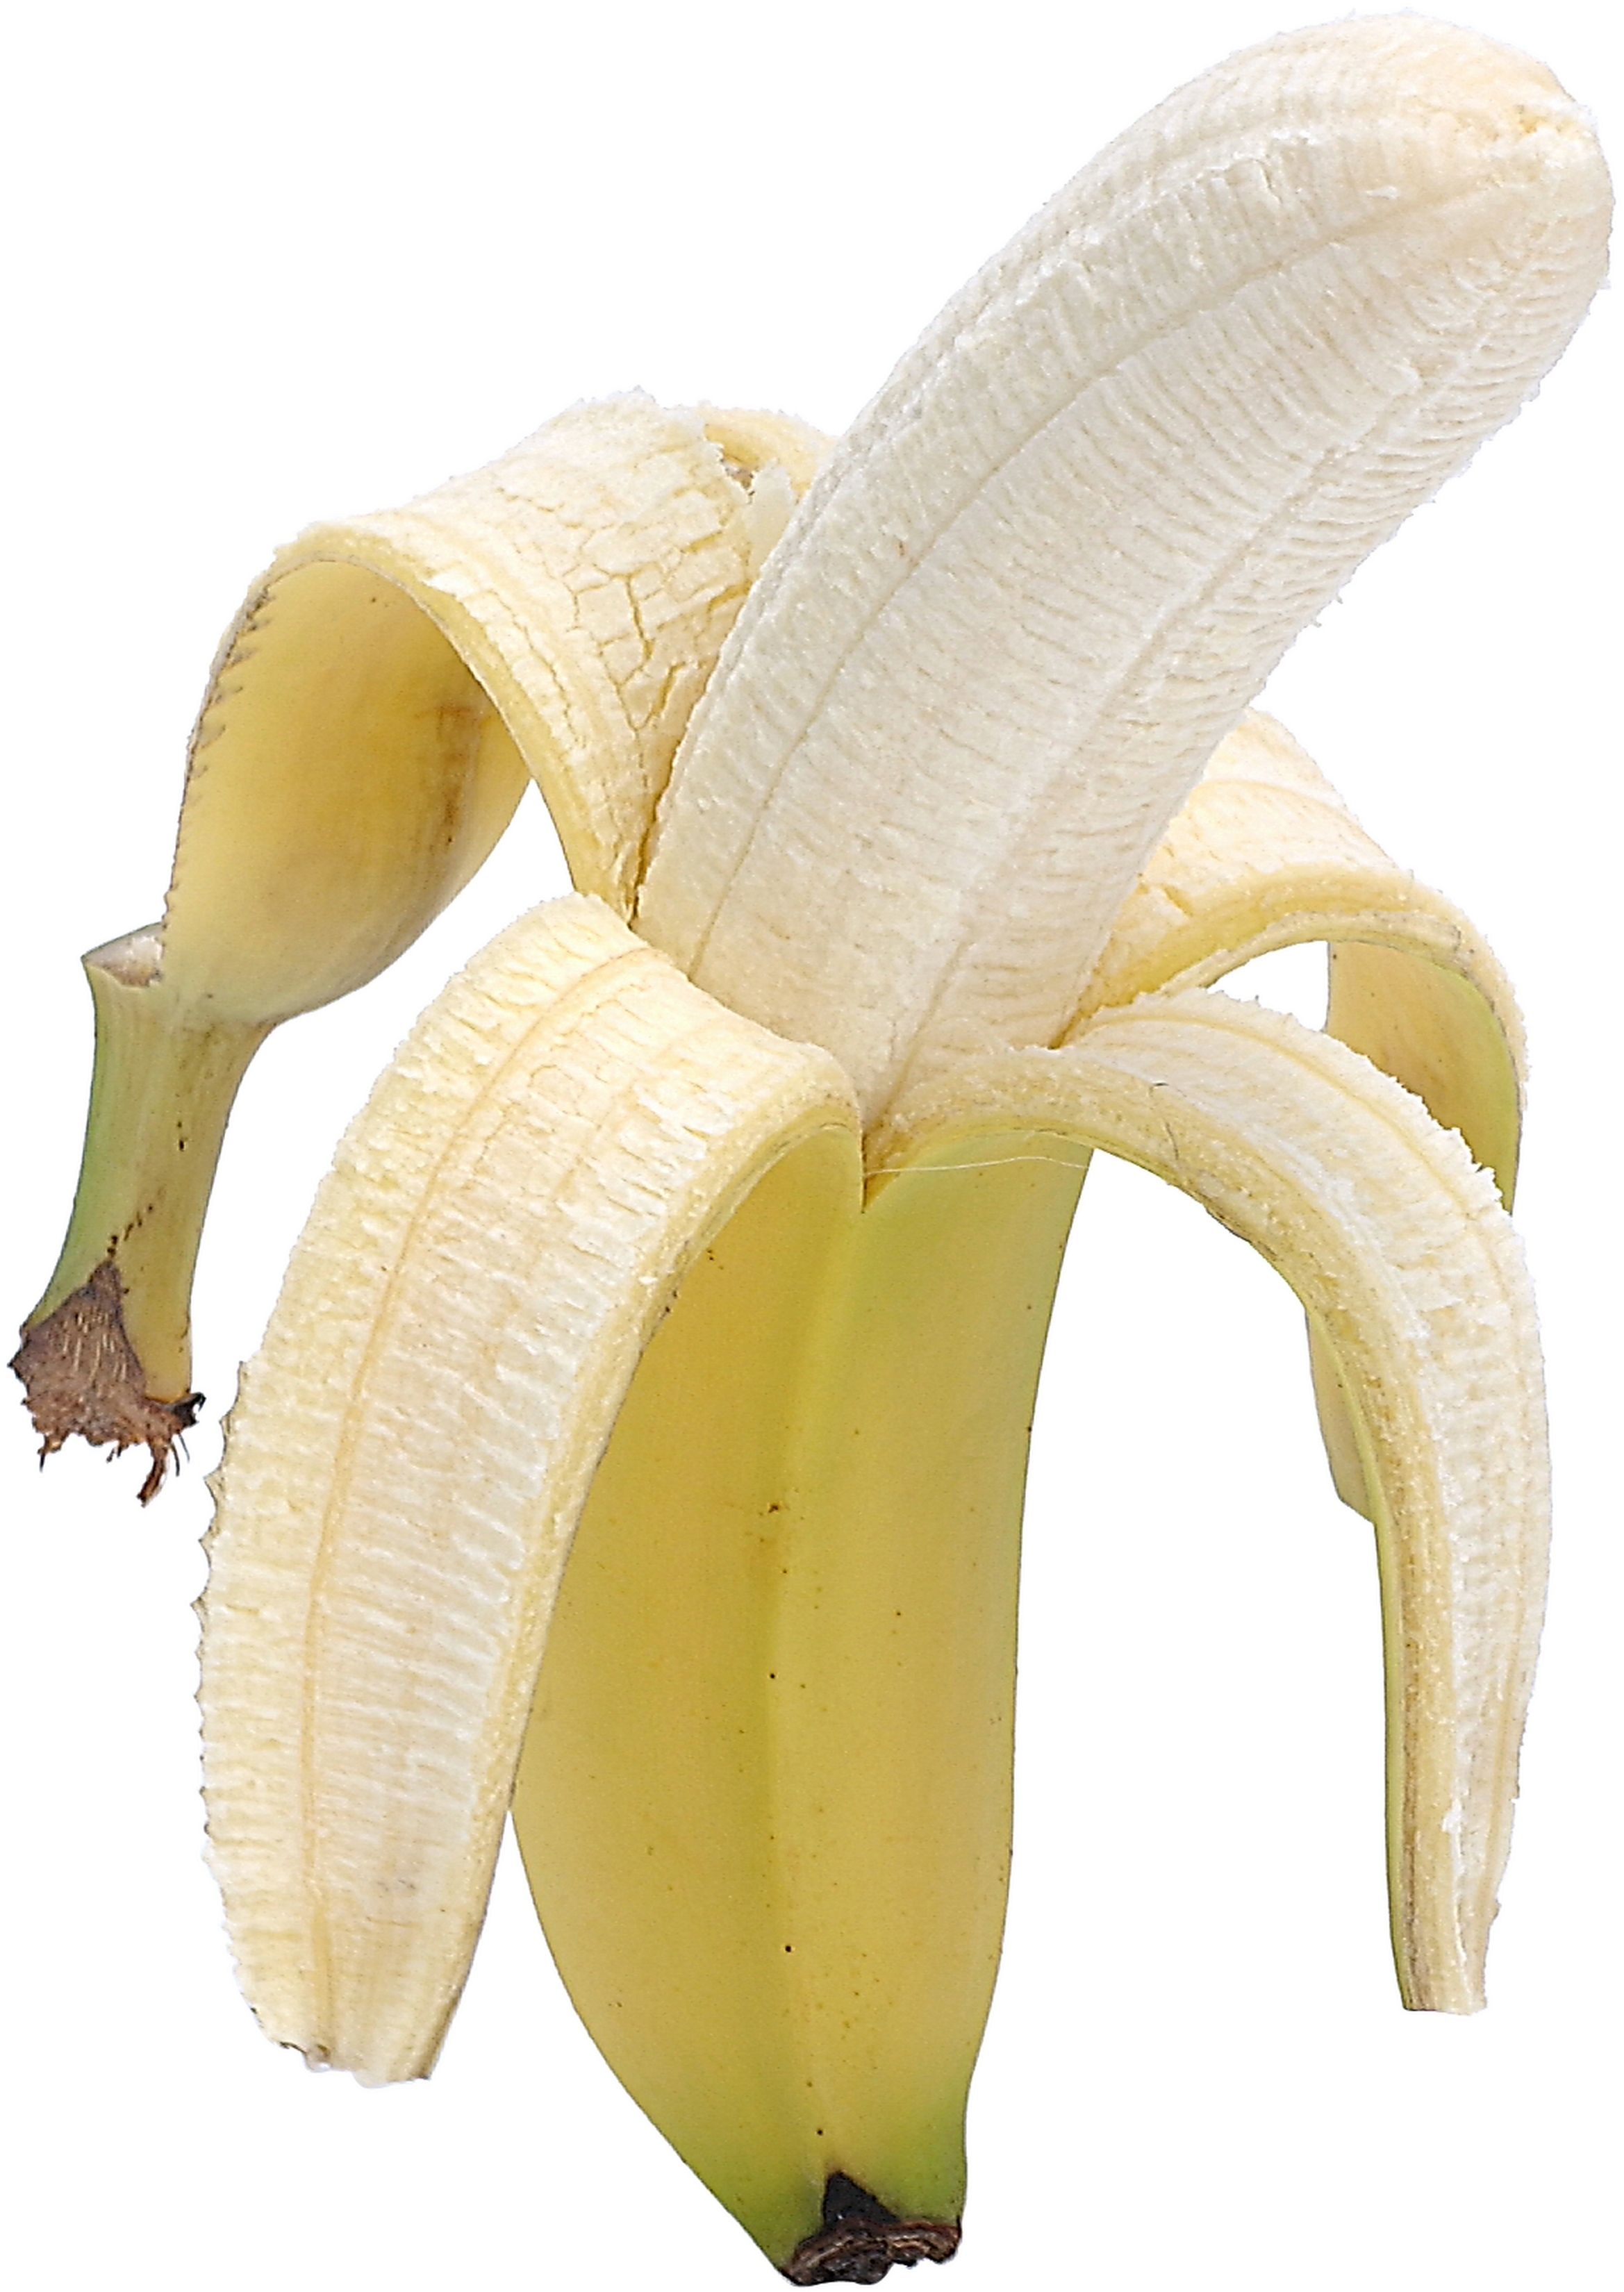 A small banana has more potassium than a spear of broccoli.